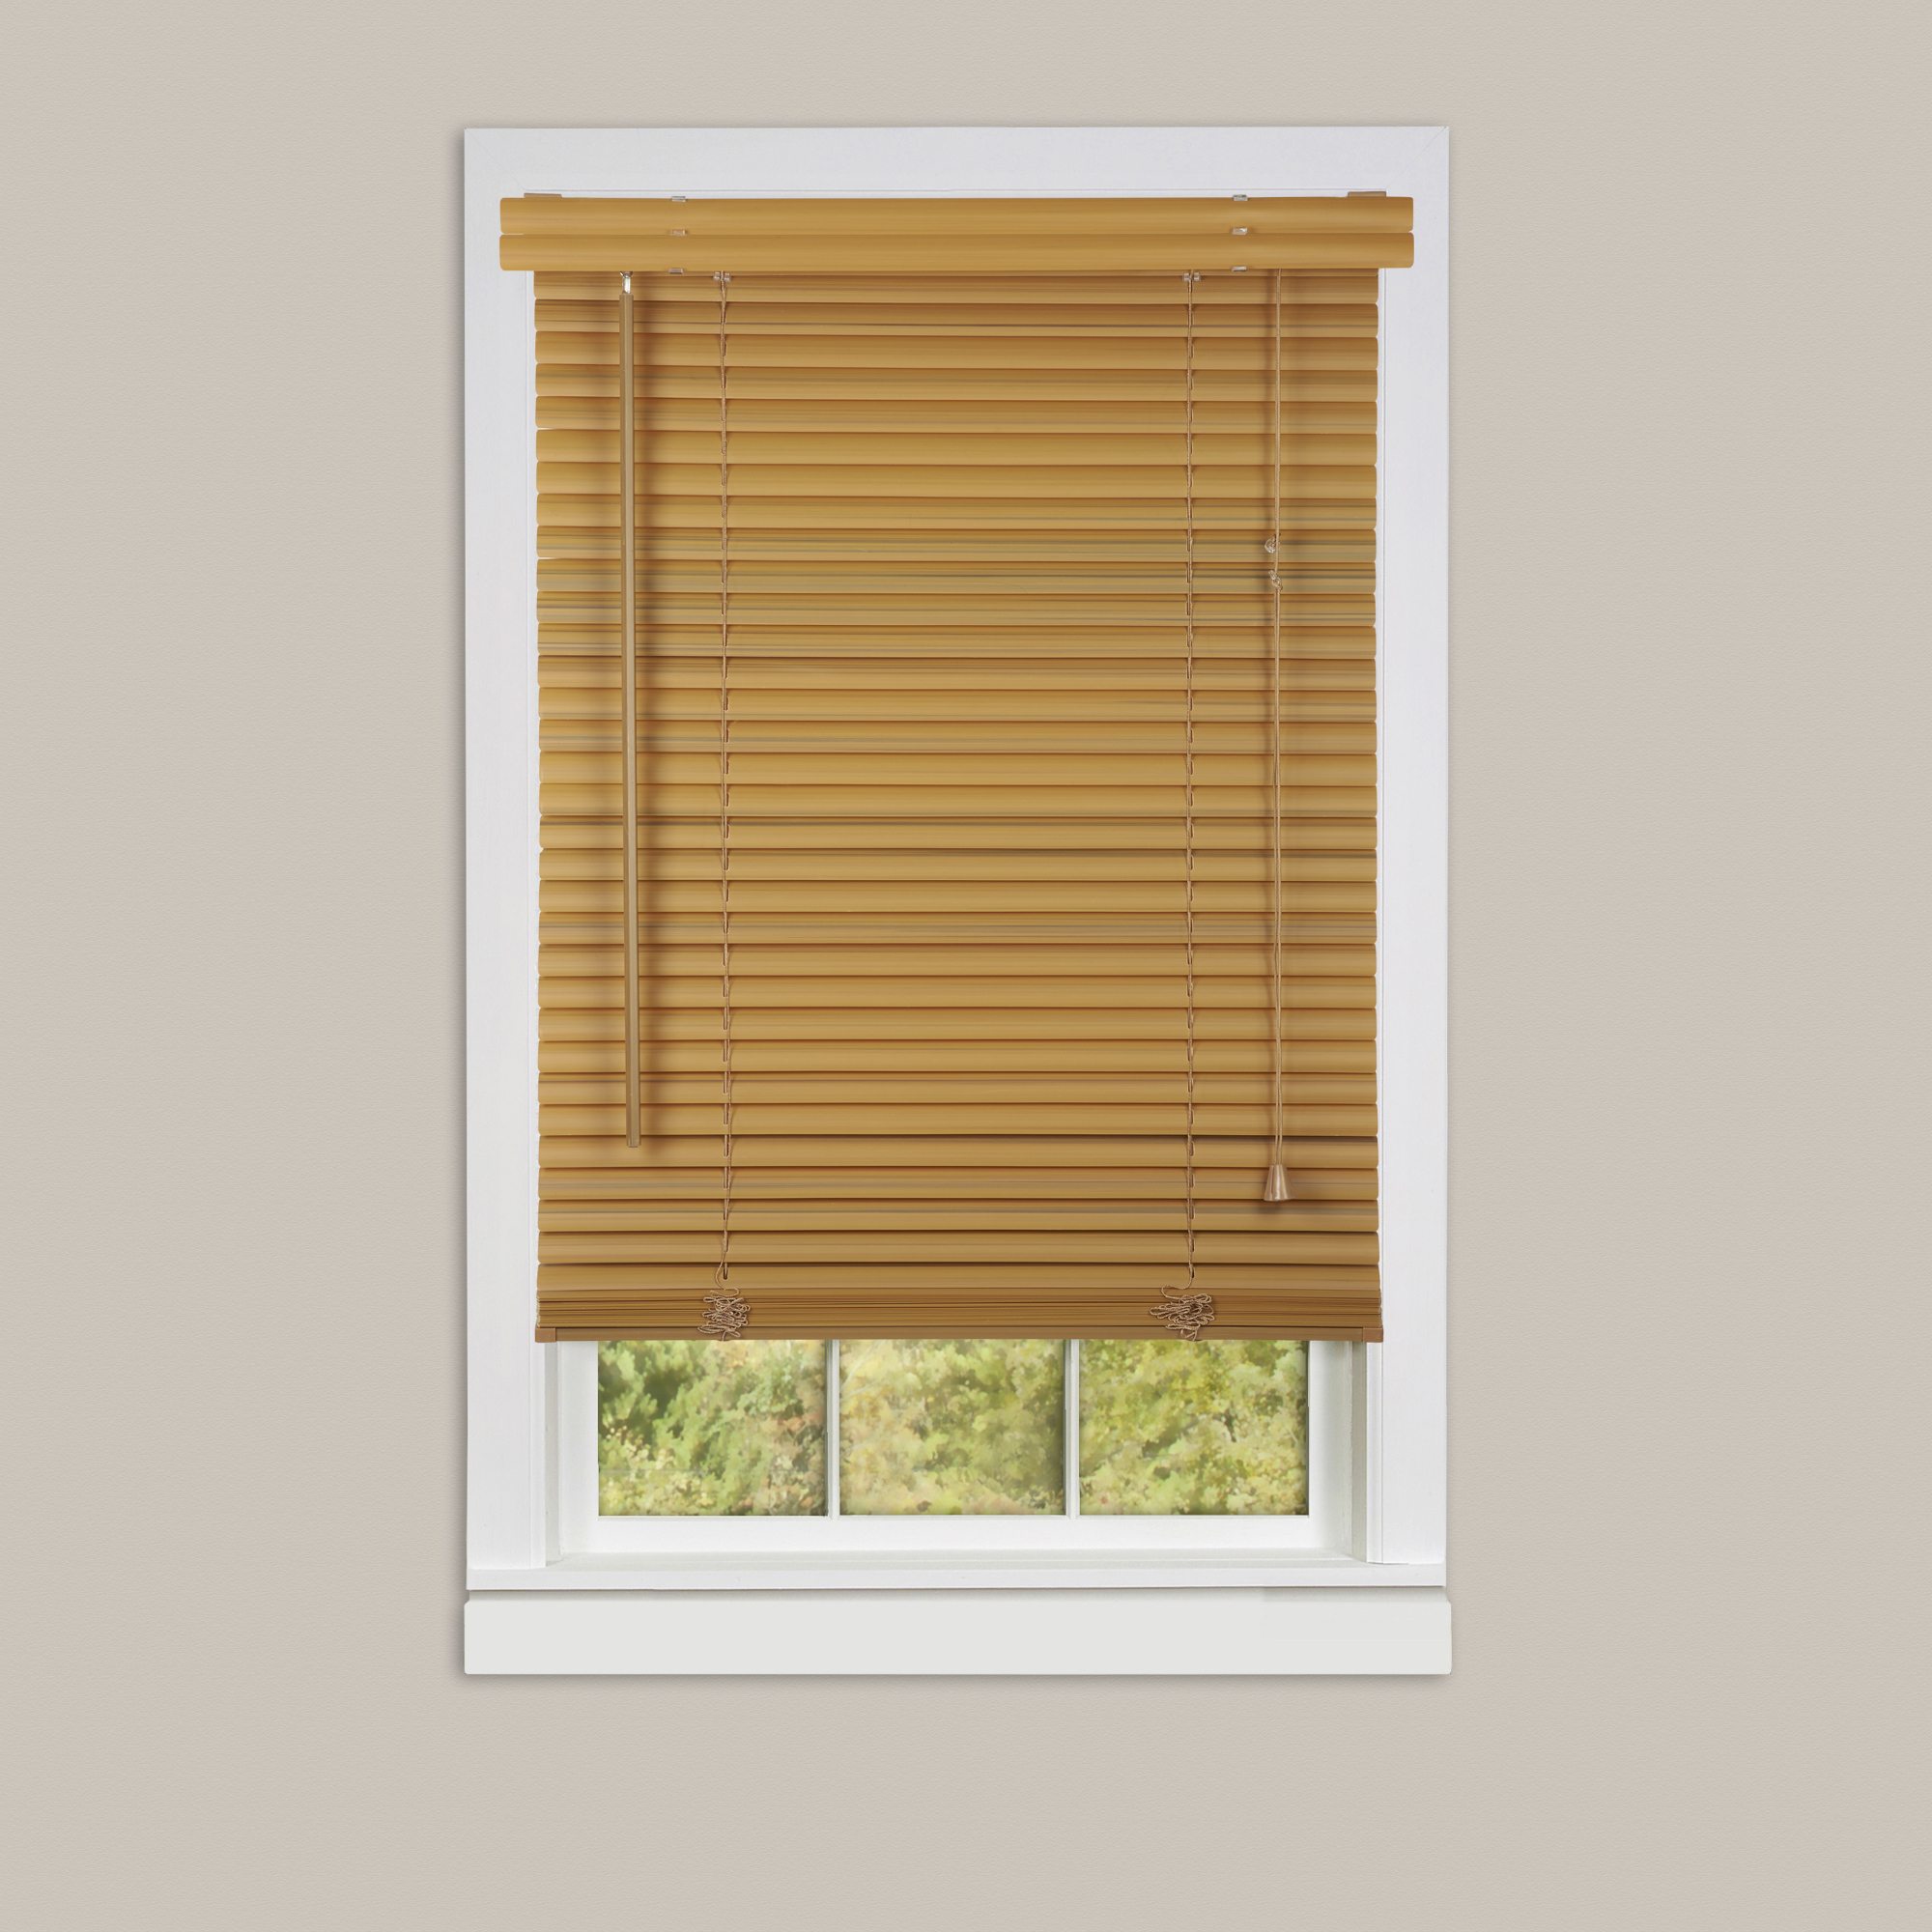 shade petite free orders home rustique blinds bamboo arlo height inch product garden with on roman over shipping overstock